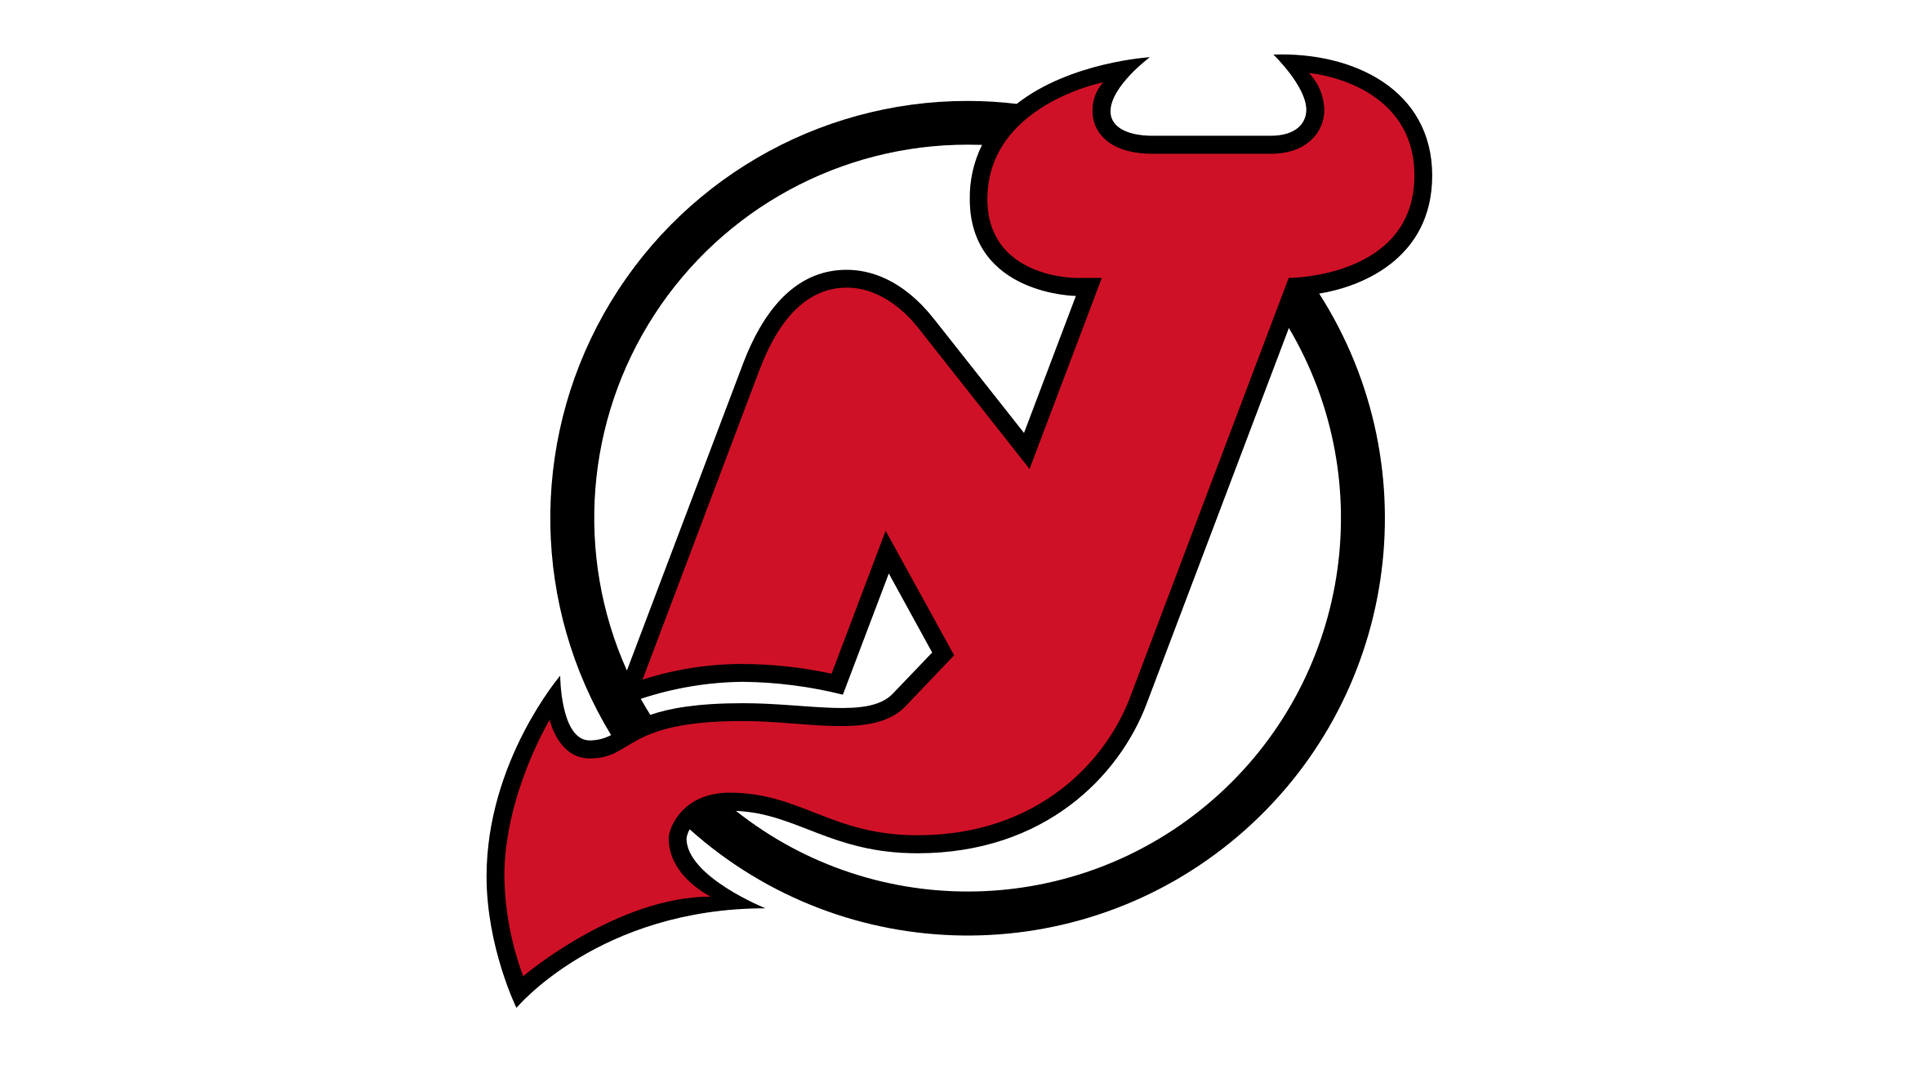 Meaning New Jersey Devils logo and symbol.